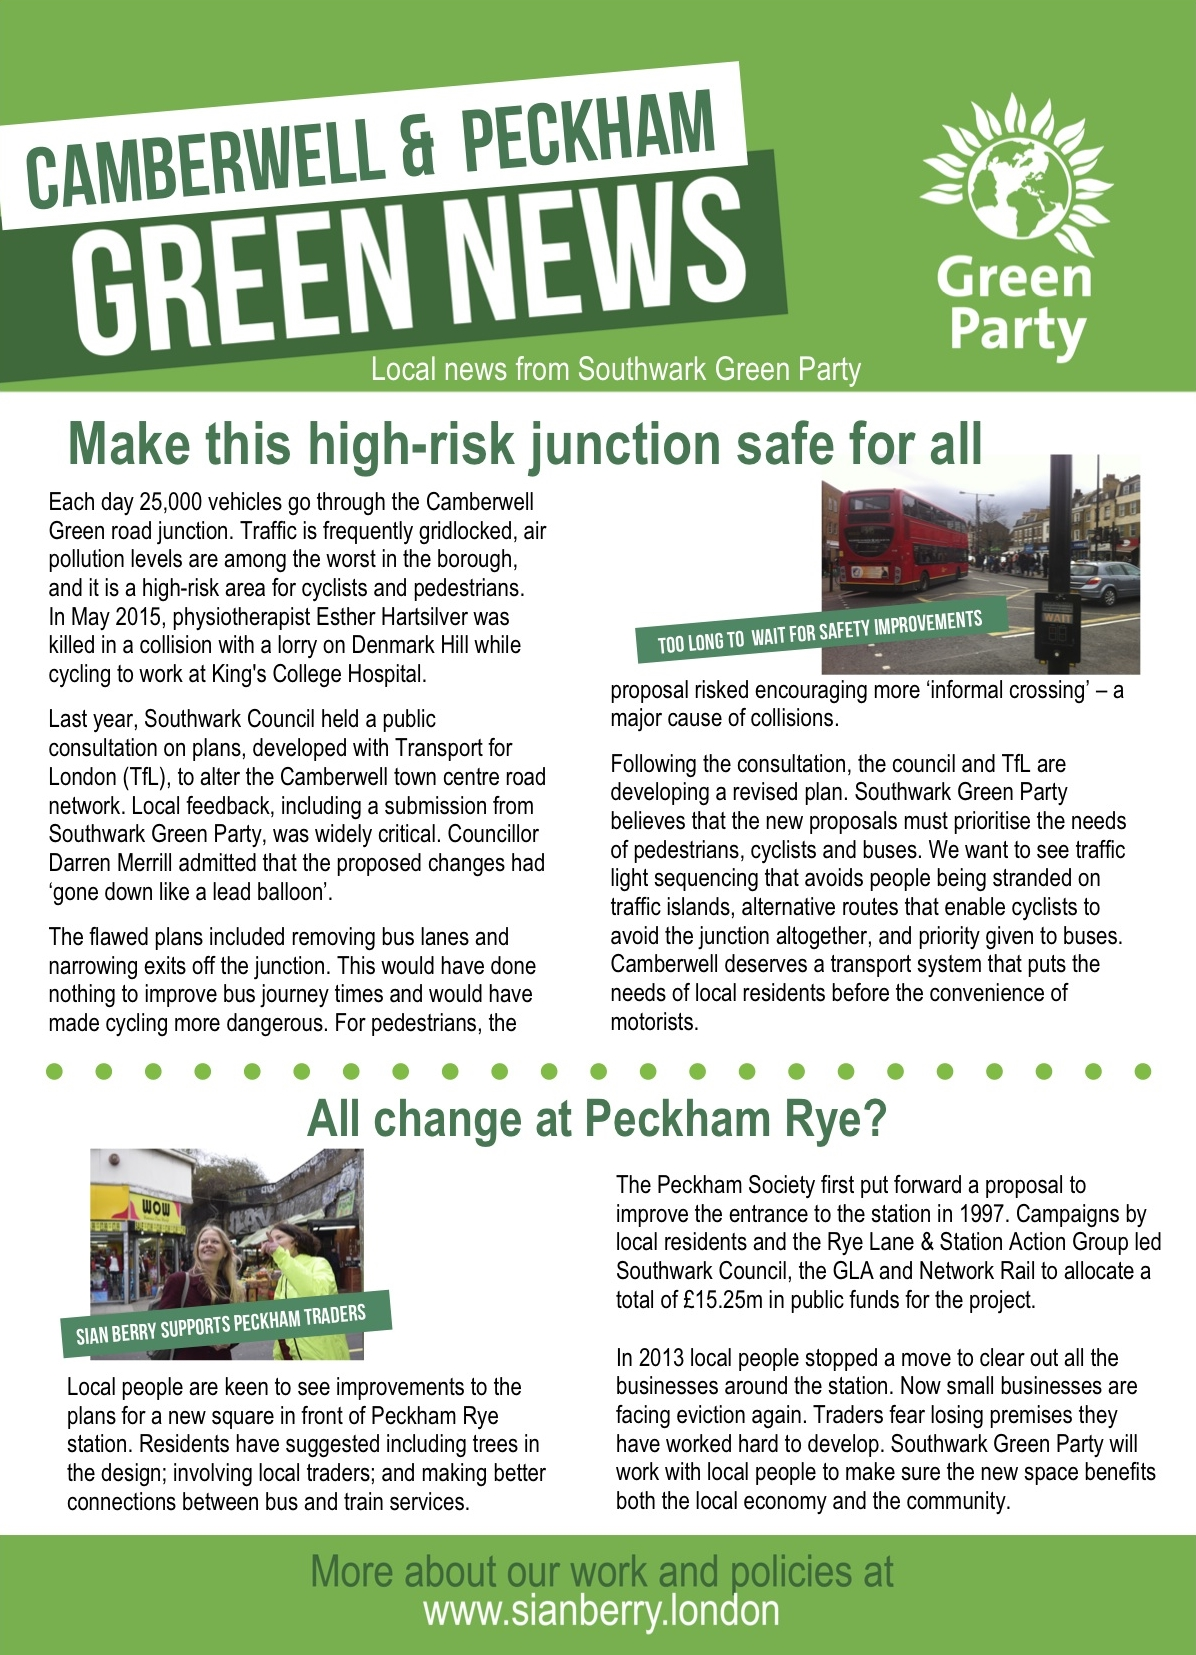 01a._Camberwell___Peckham_Green_News_April_2016.jpg